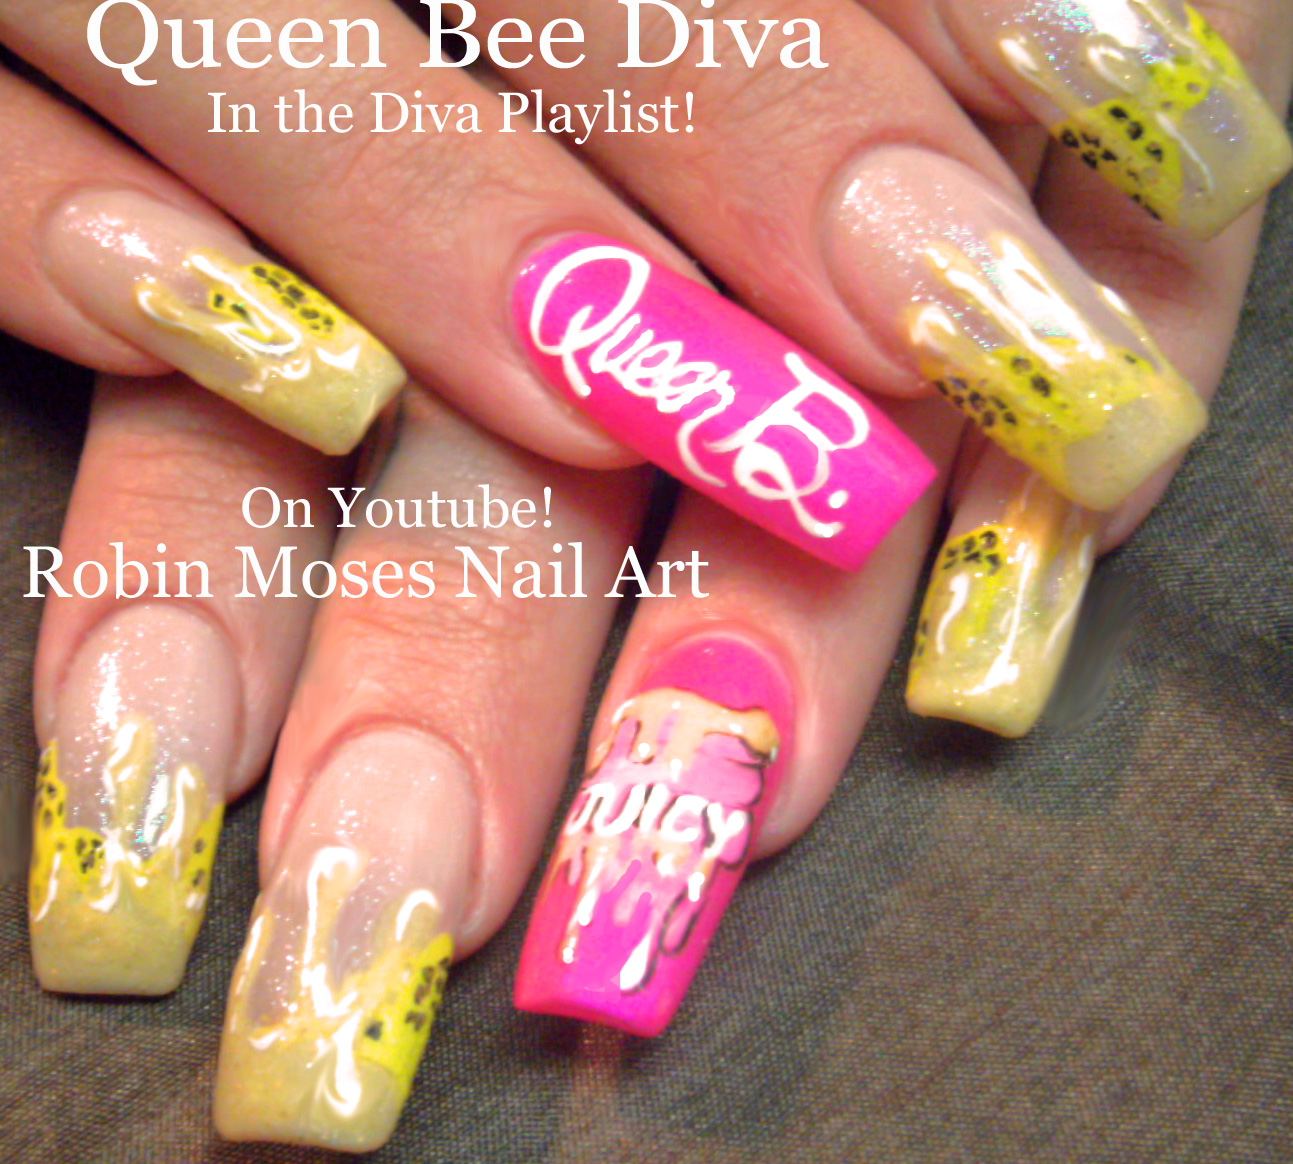 Robin moses nail art queen bee nail art diva nails diva nail queen bee nail art diva nails diva nail art honeycomb nails bumblebee nails nail art summer nail art long nail art juicy nails prinsesfo Image collections